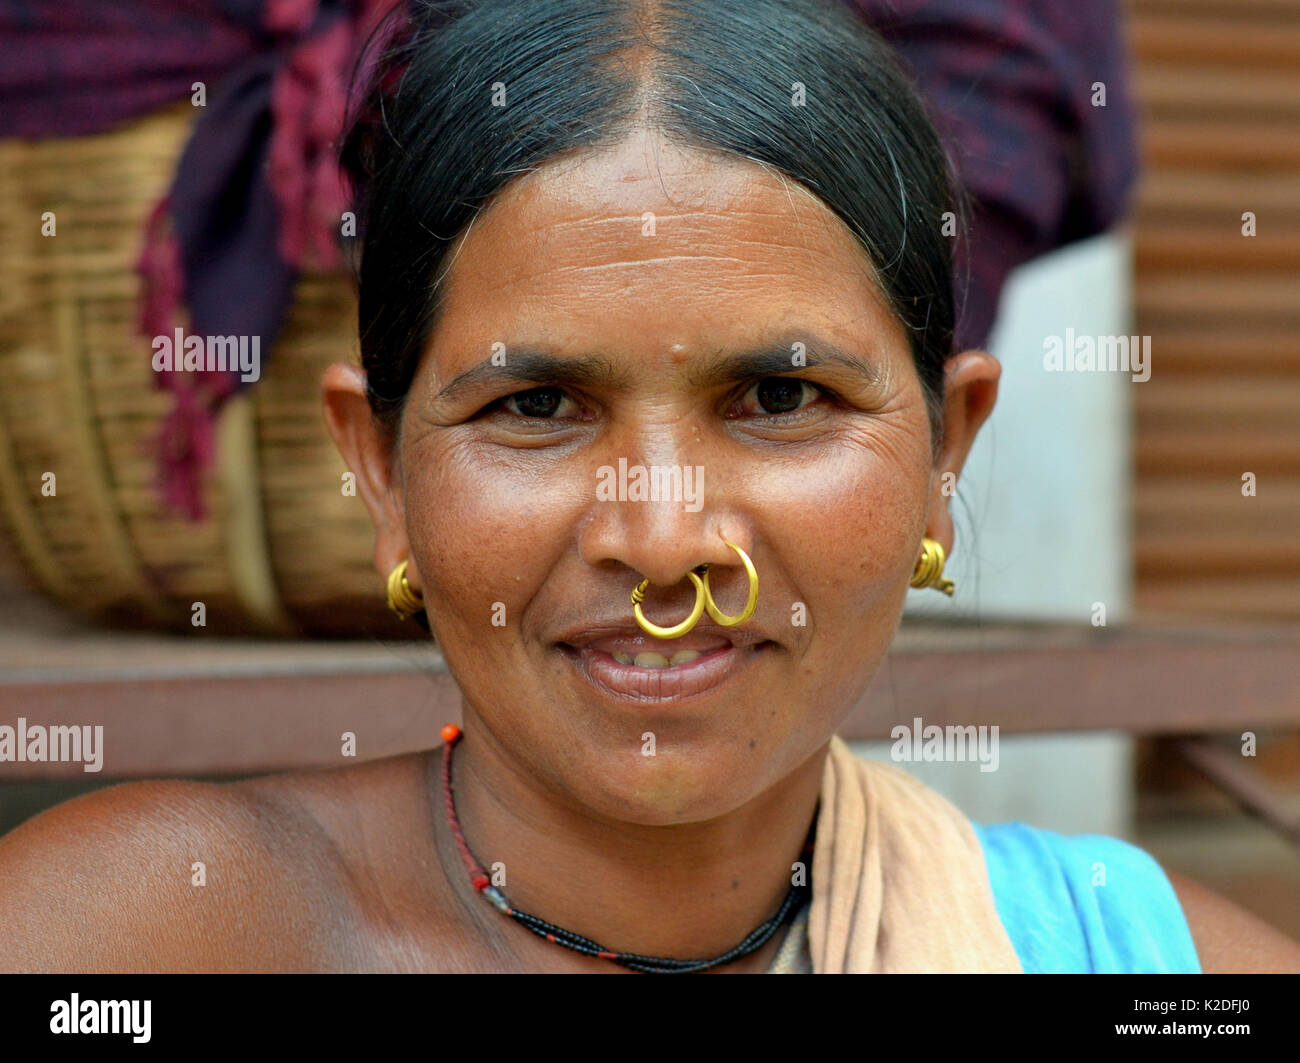 Nose Rings Stock Photos & Nose Rings Stock Images - Alamy